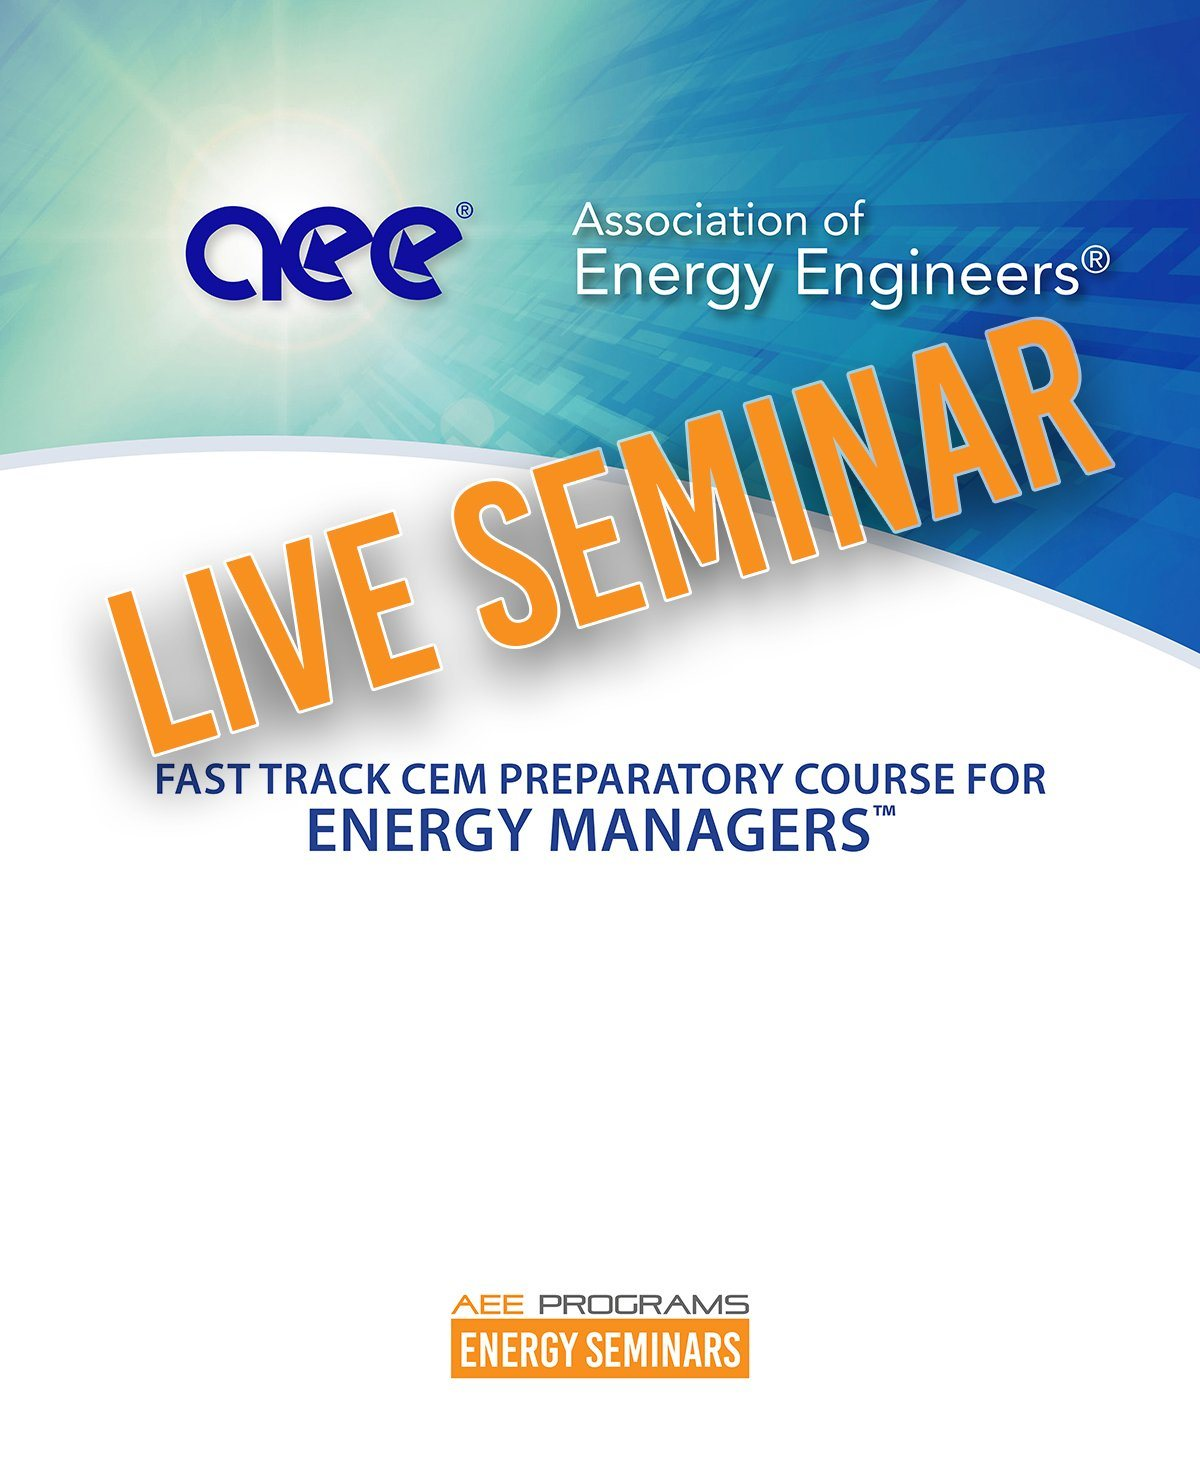 Fast Track CEM Preparatory Course For Energy Managers™ – AEE Programs